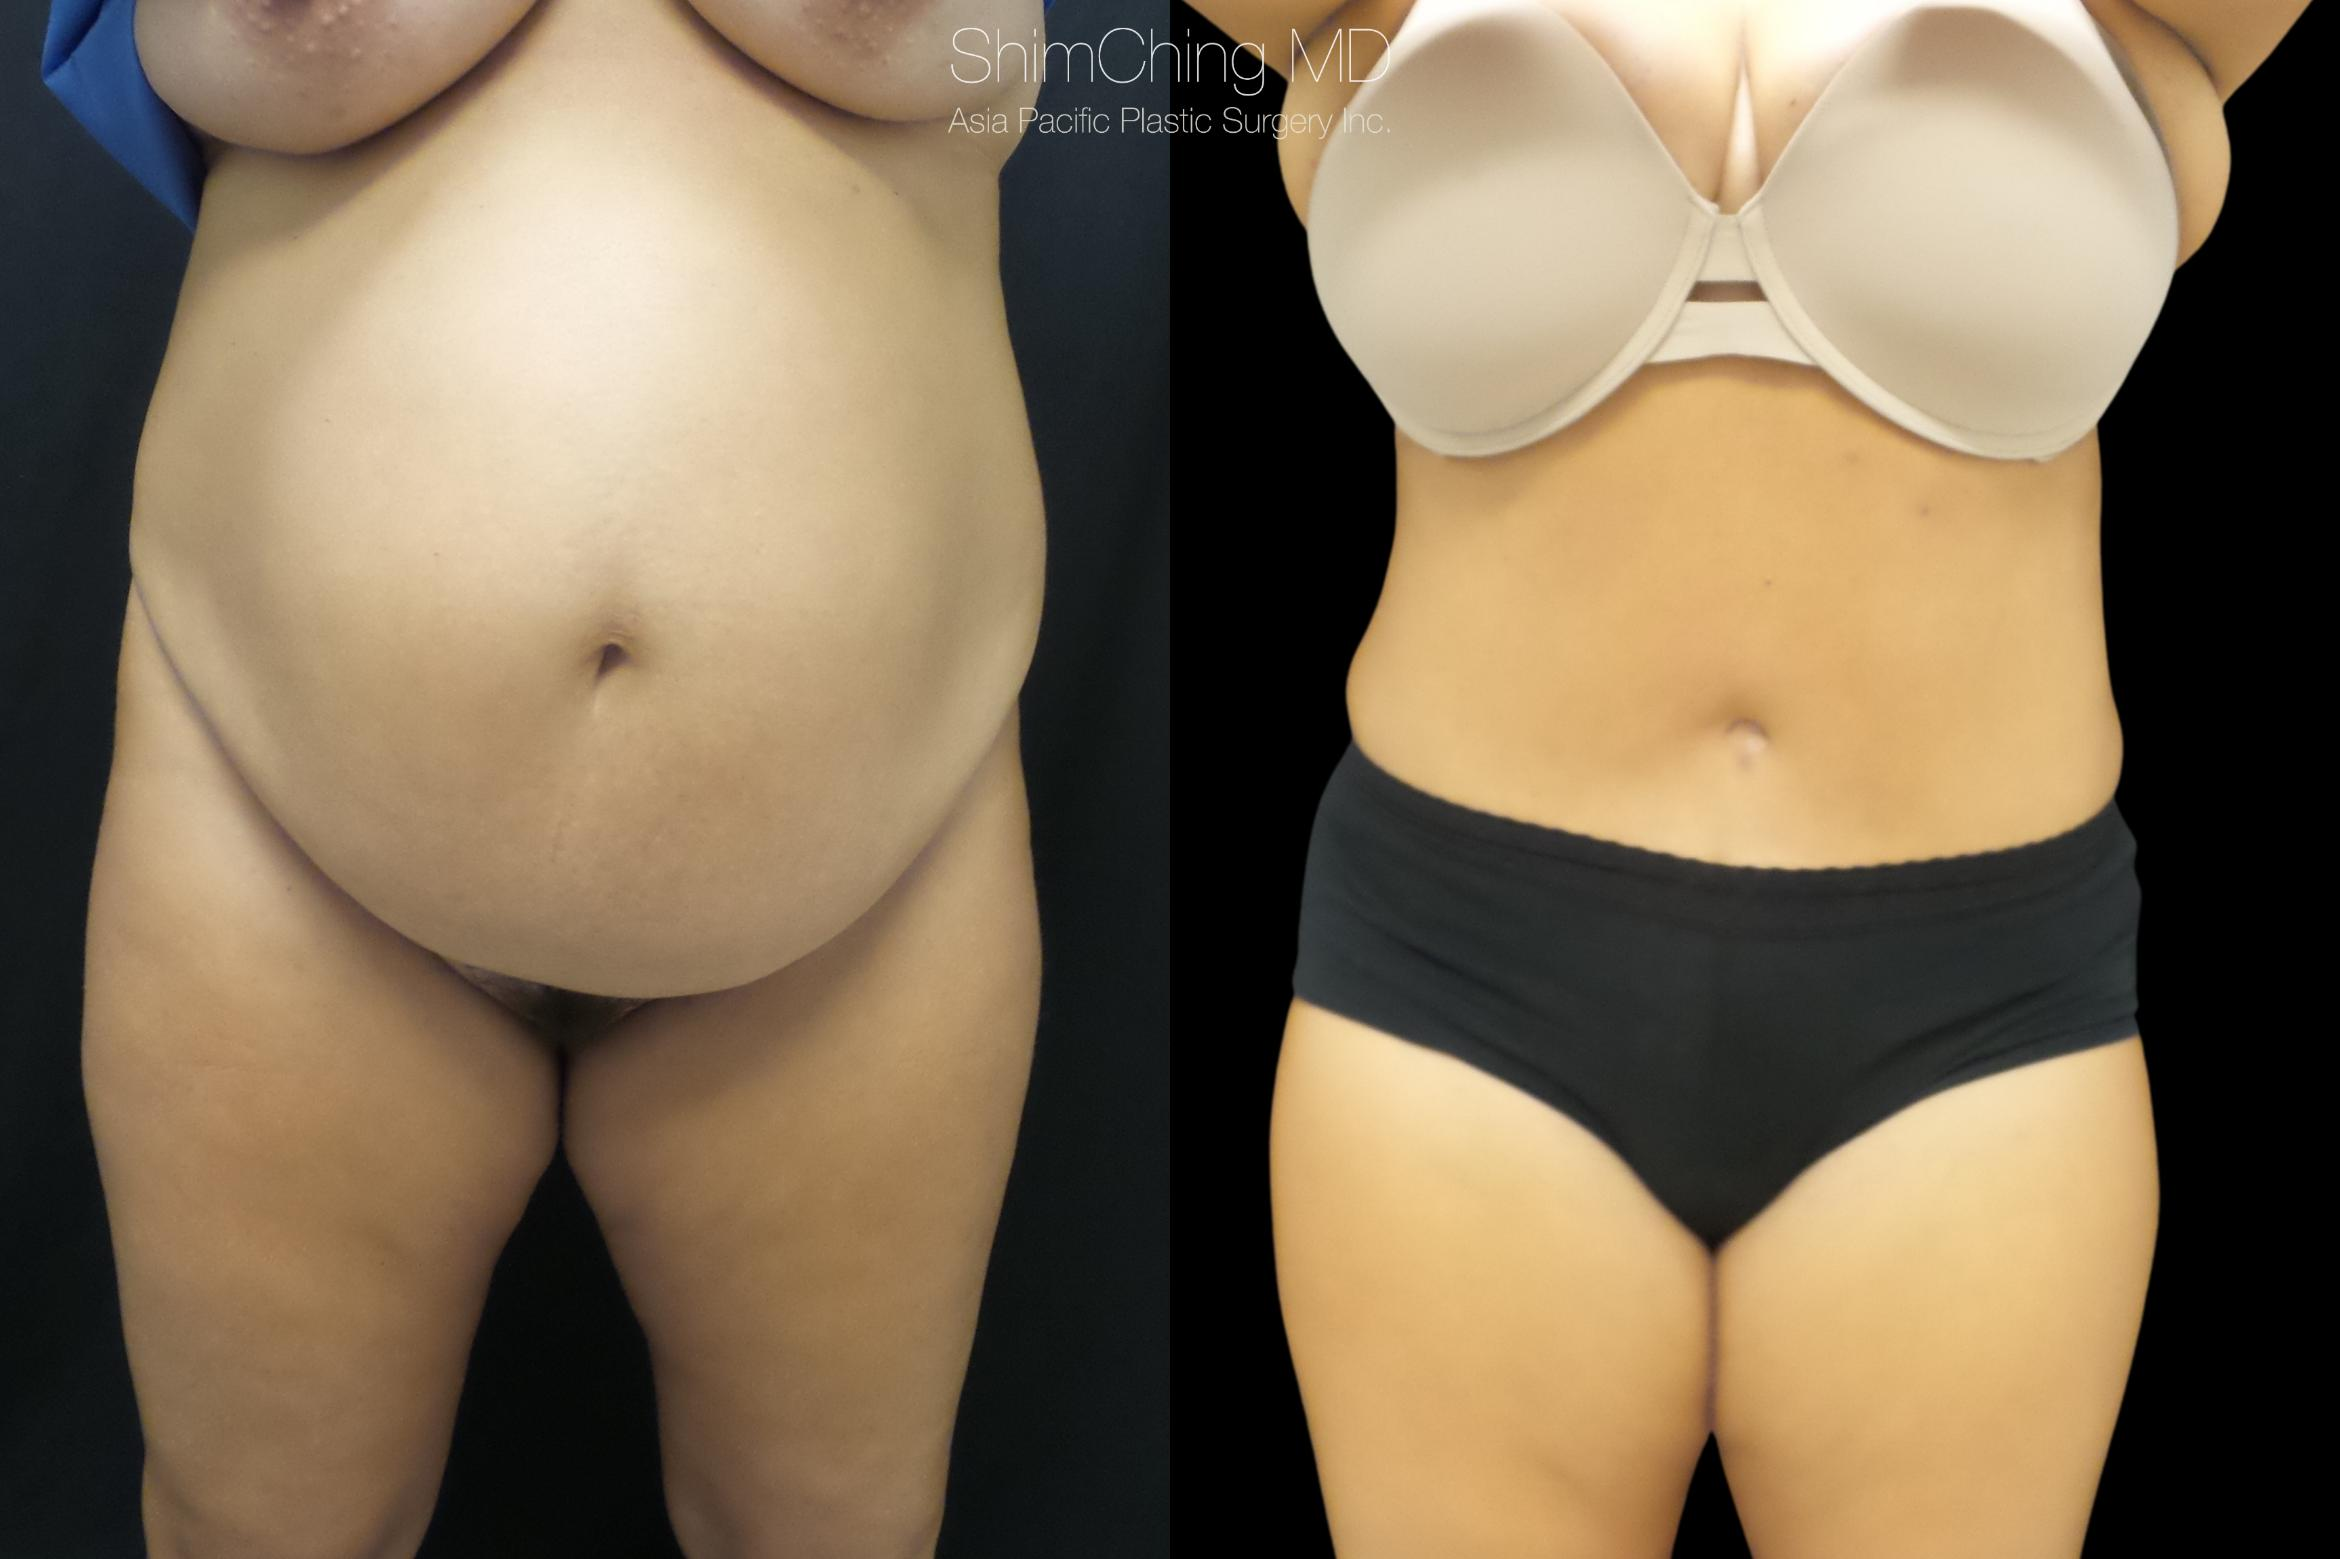 Abdominoplasty Case 301 Before & After Front | Honolulu, HI | Shim Ching, MD: Asia Pacific Plastic Surgery